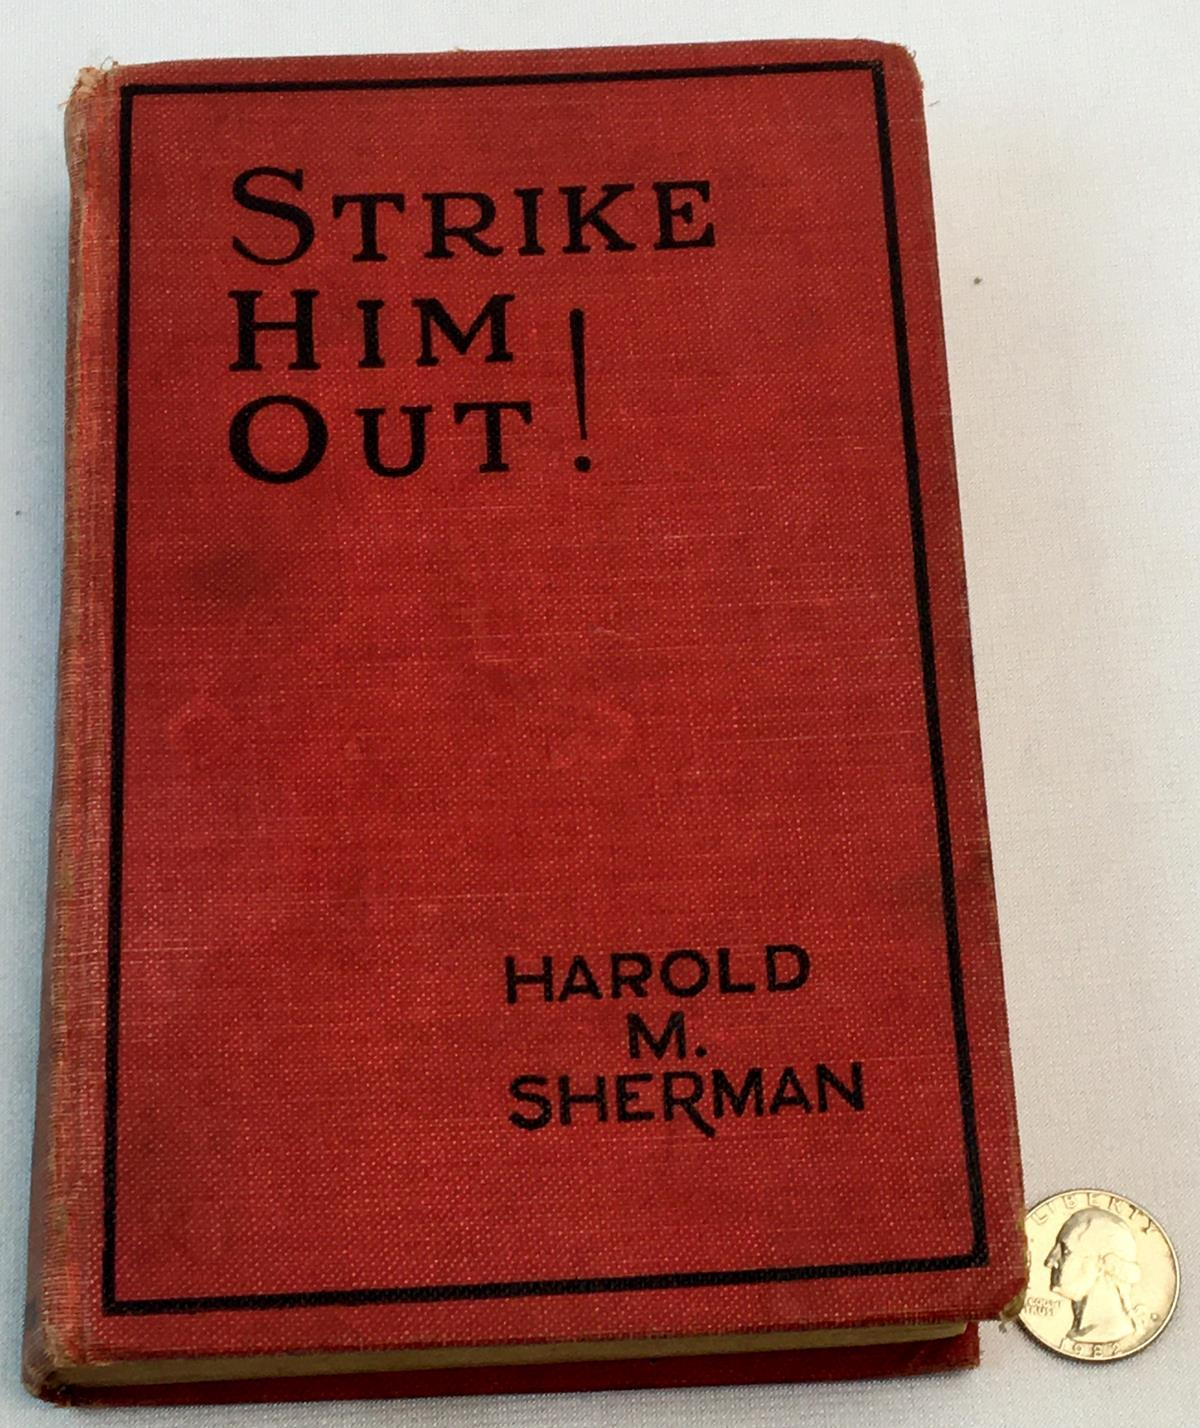 1931 Strike Him Out! by Harold M. Sherman FIRST EDITION